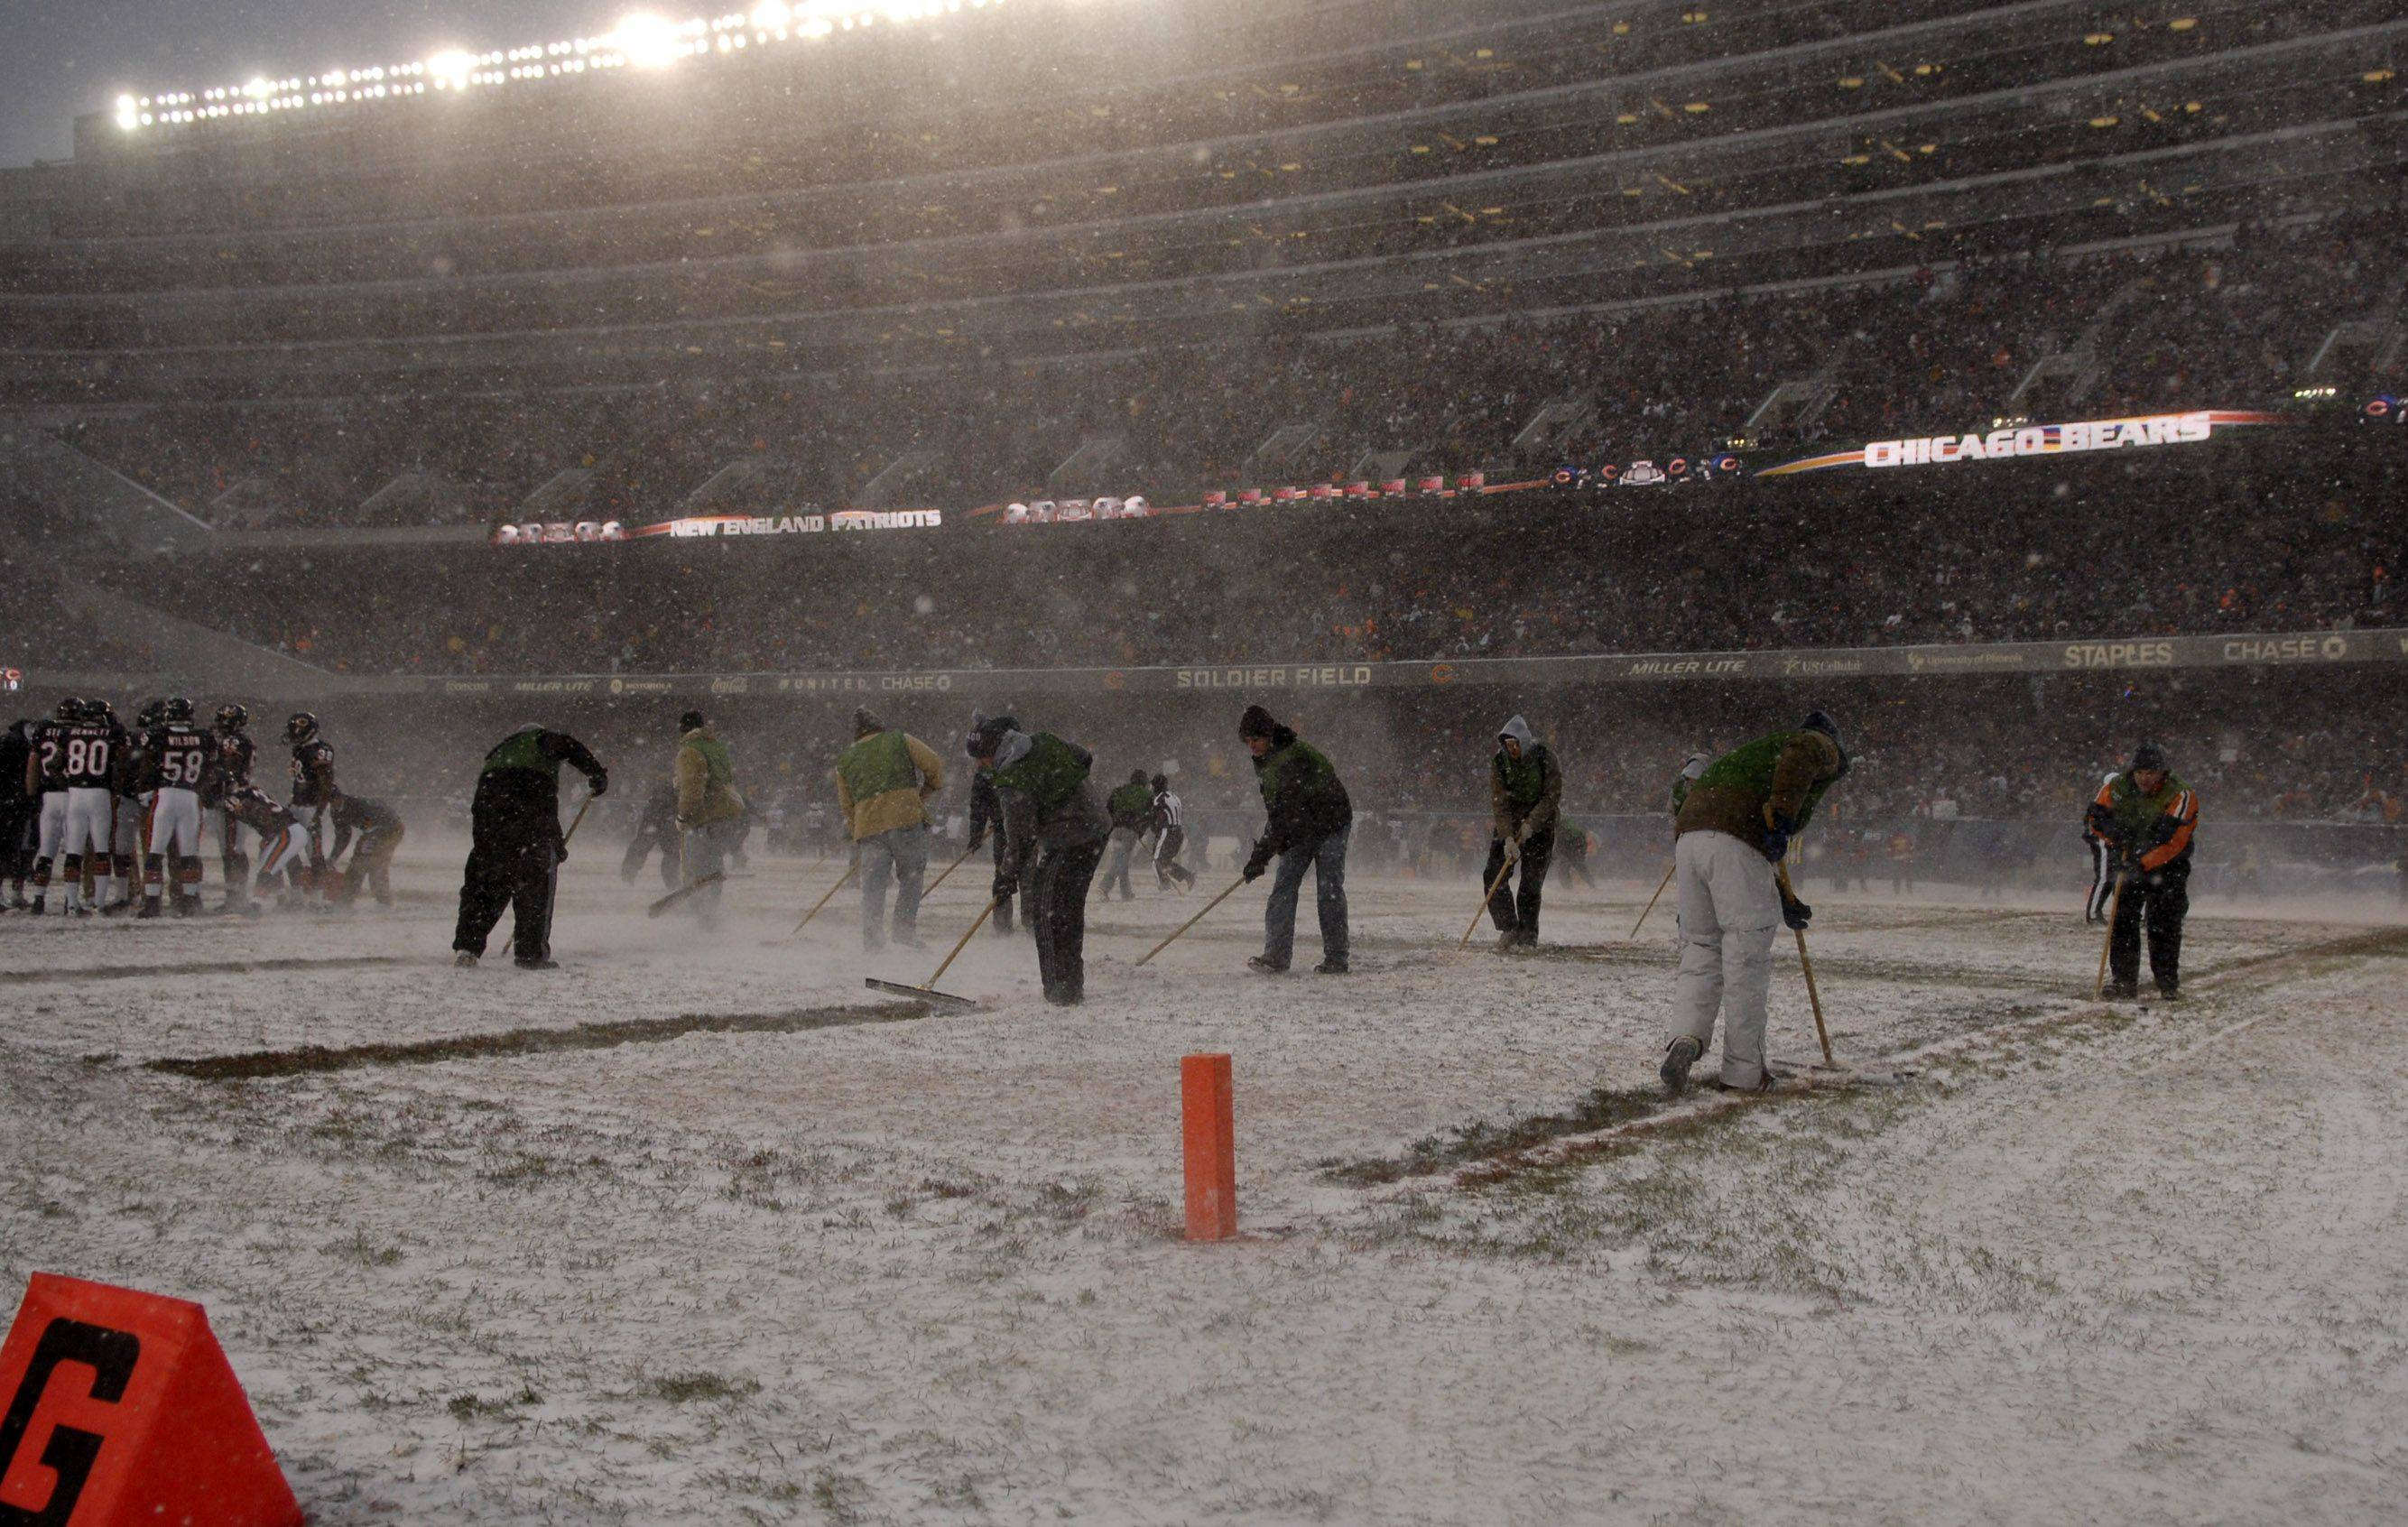 The grounds crew sweeps and squeegees the field during a timeout of Sunday's game at Soldier Field in Chicago.